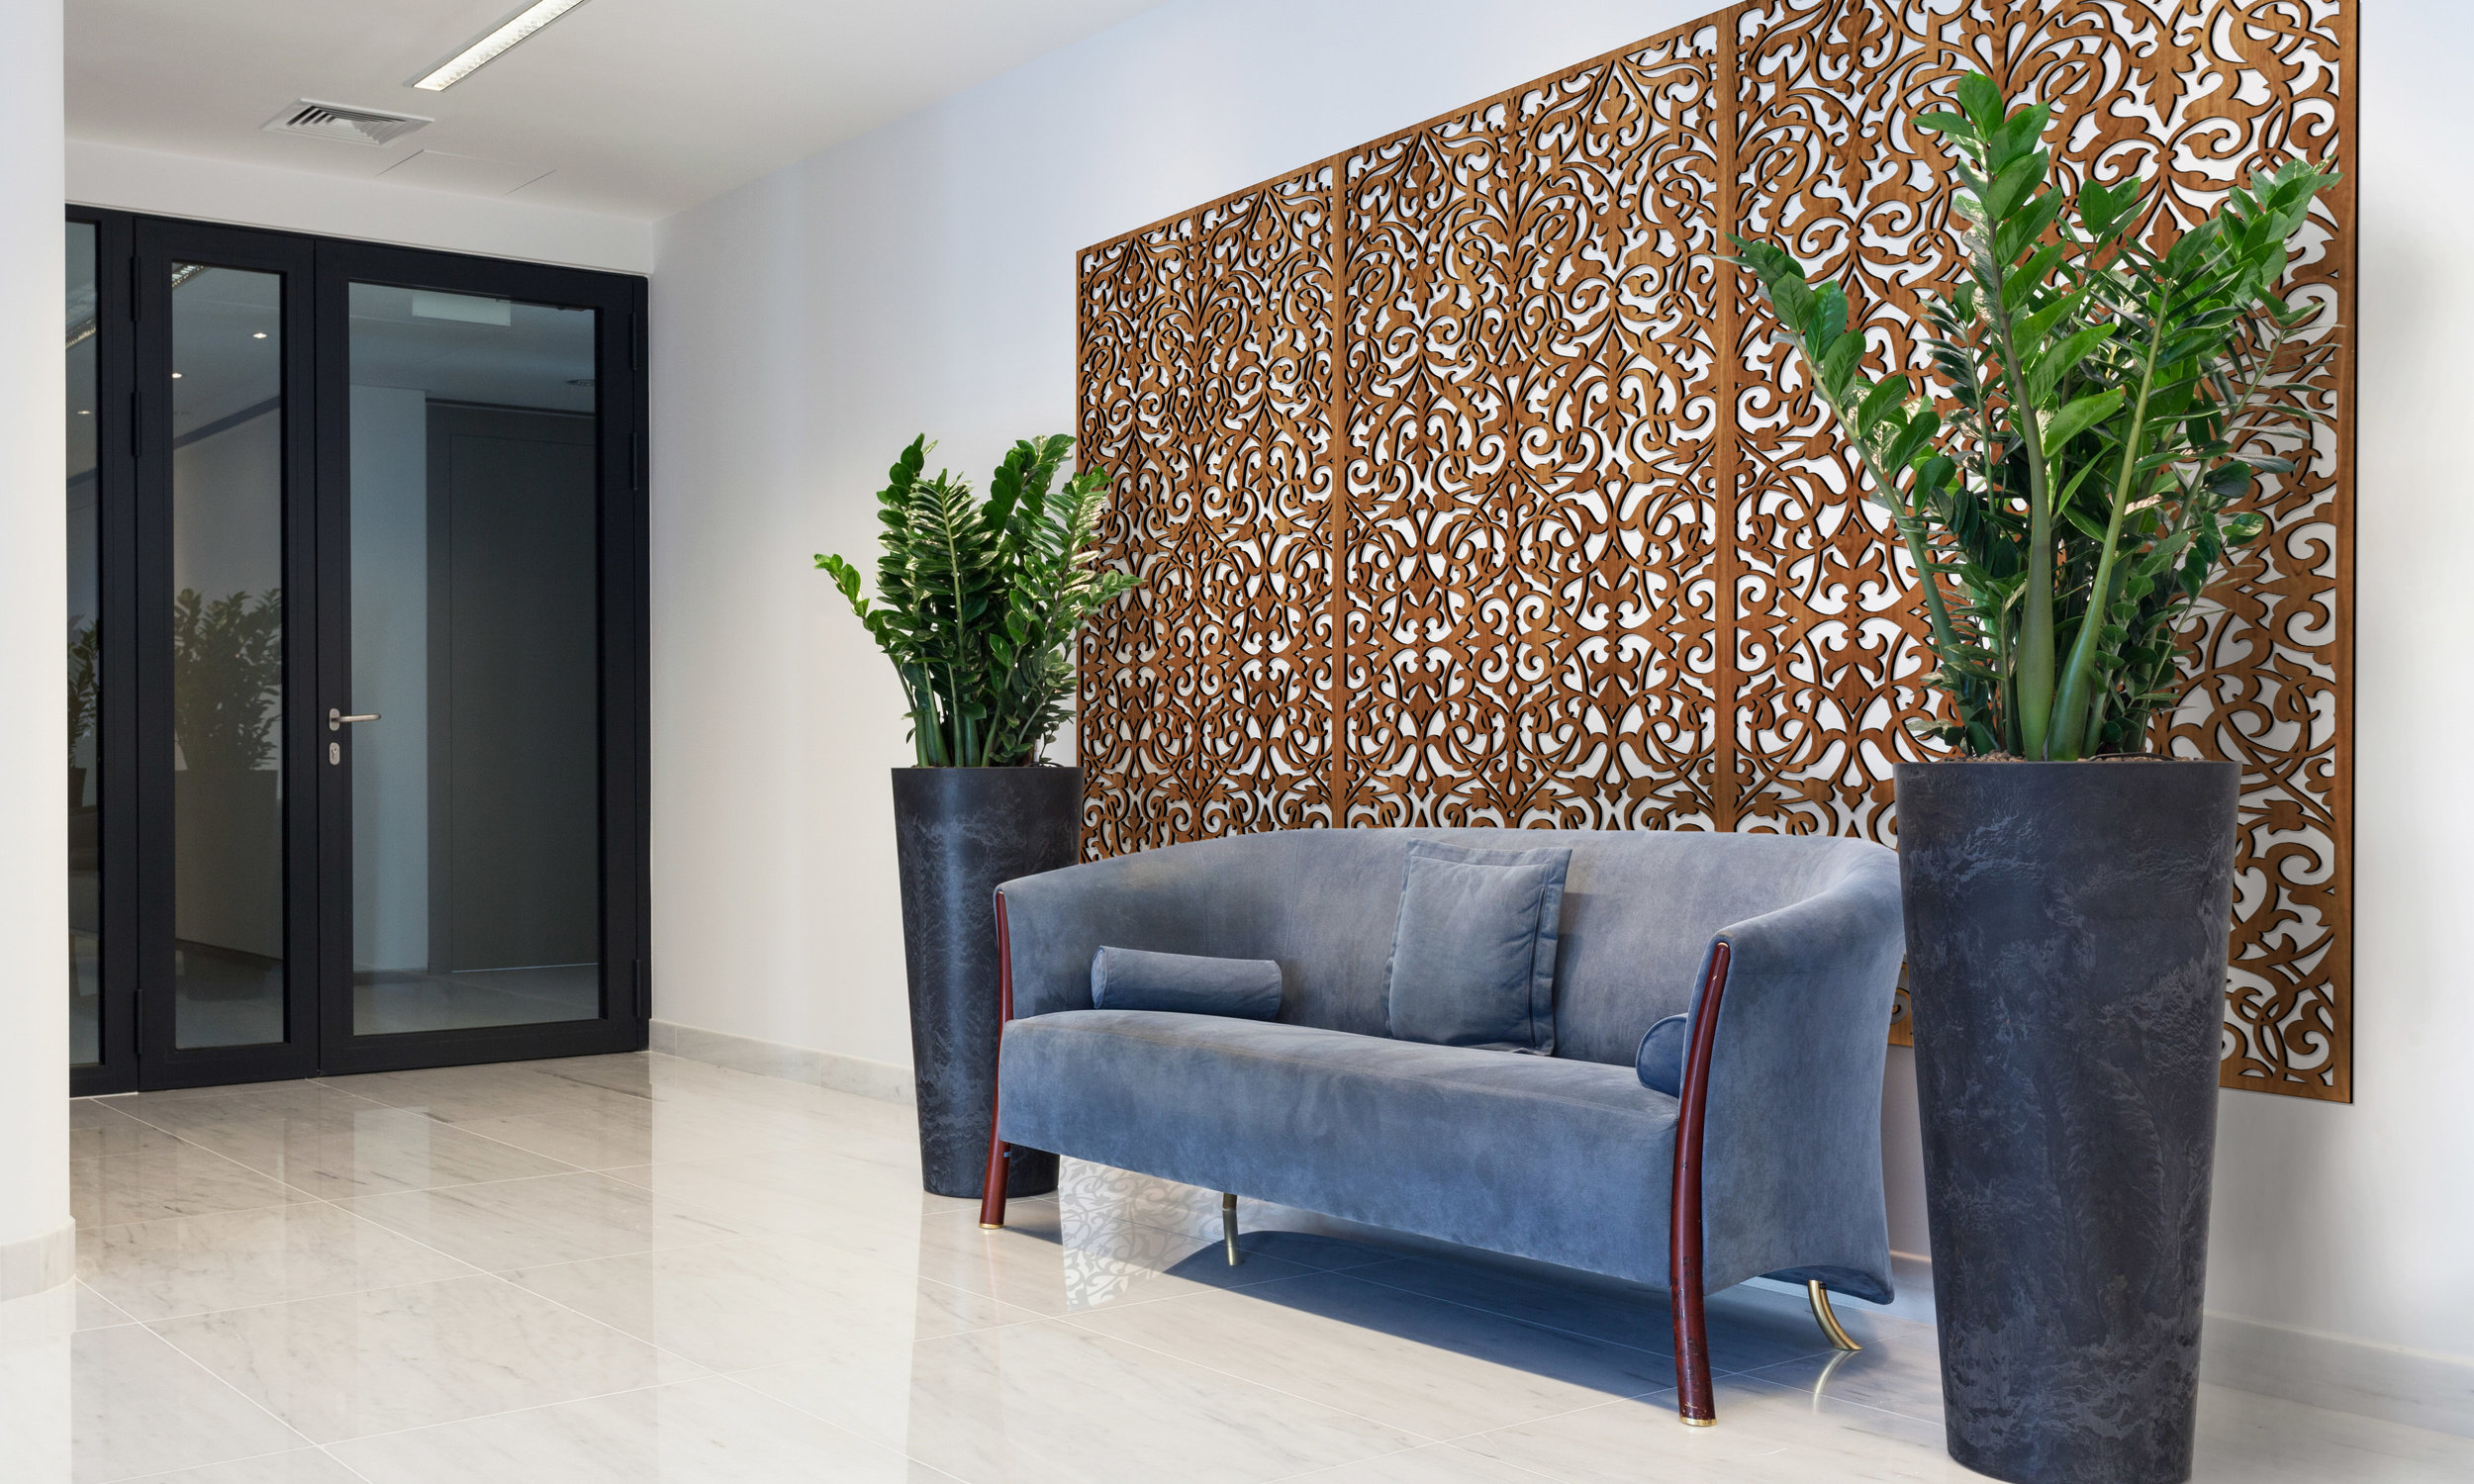 Installation Rendering A   Ornate Damask decorative office wall panel - shown in Cherry